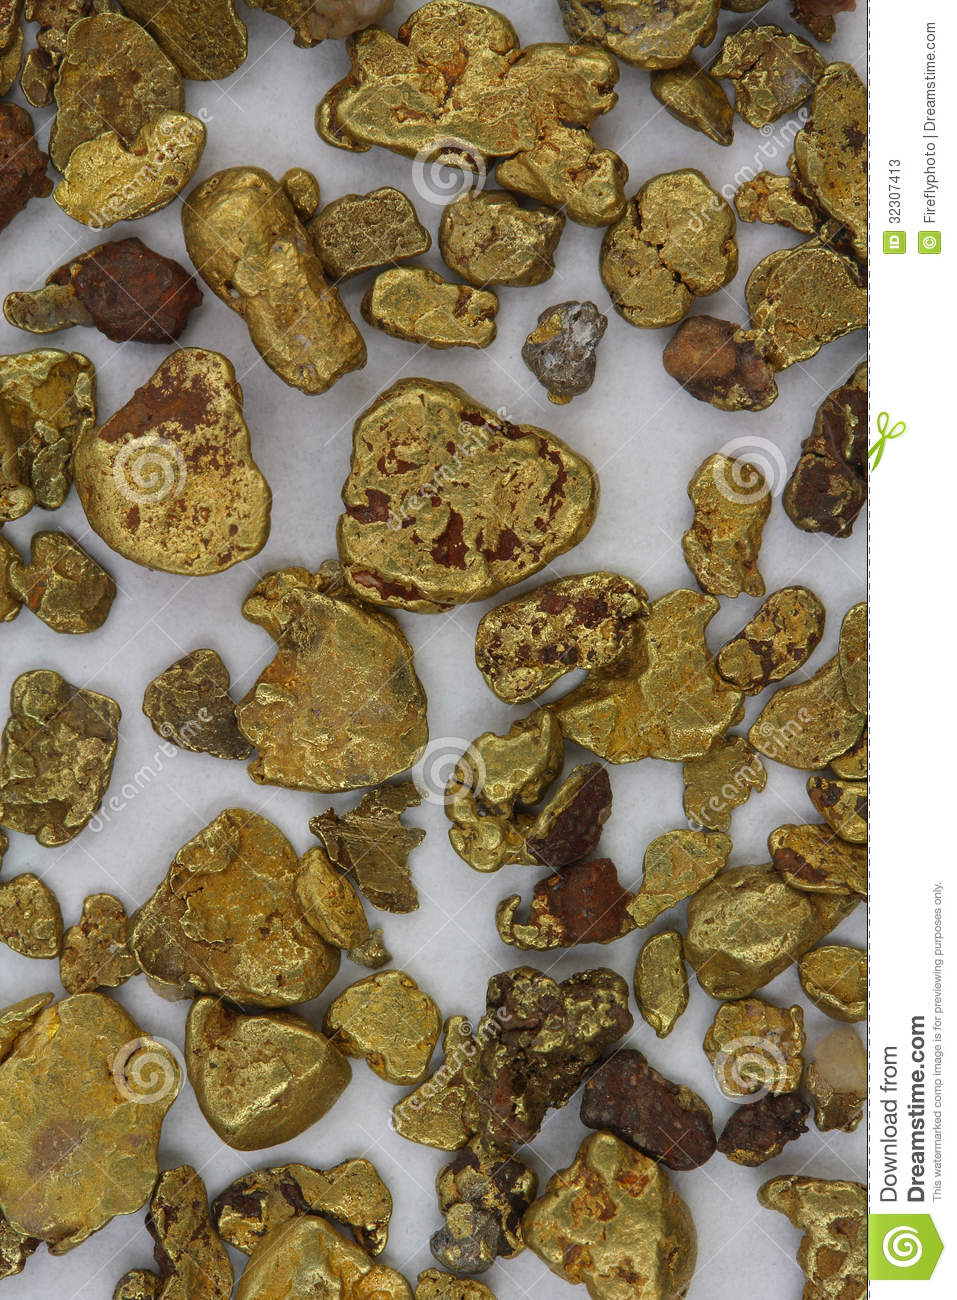 California Placer Gold Nuggets Stock Image - Image of placer